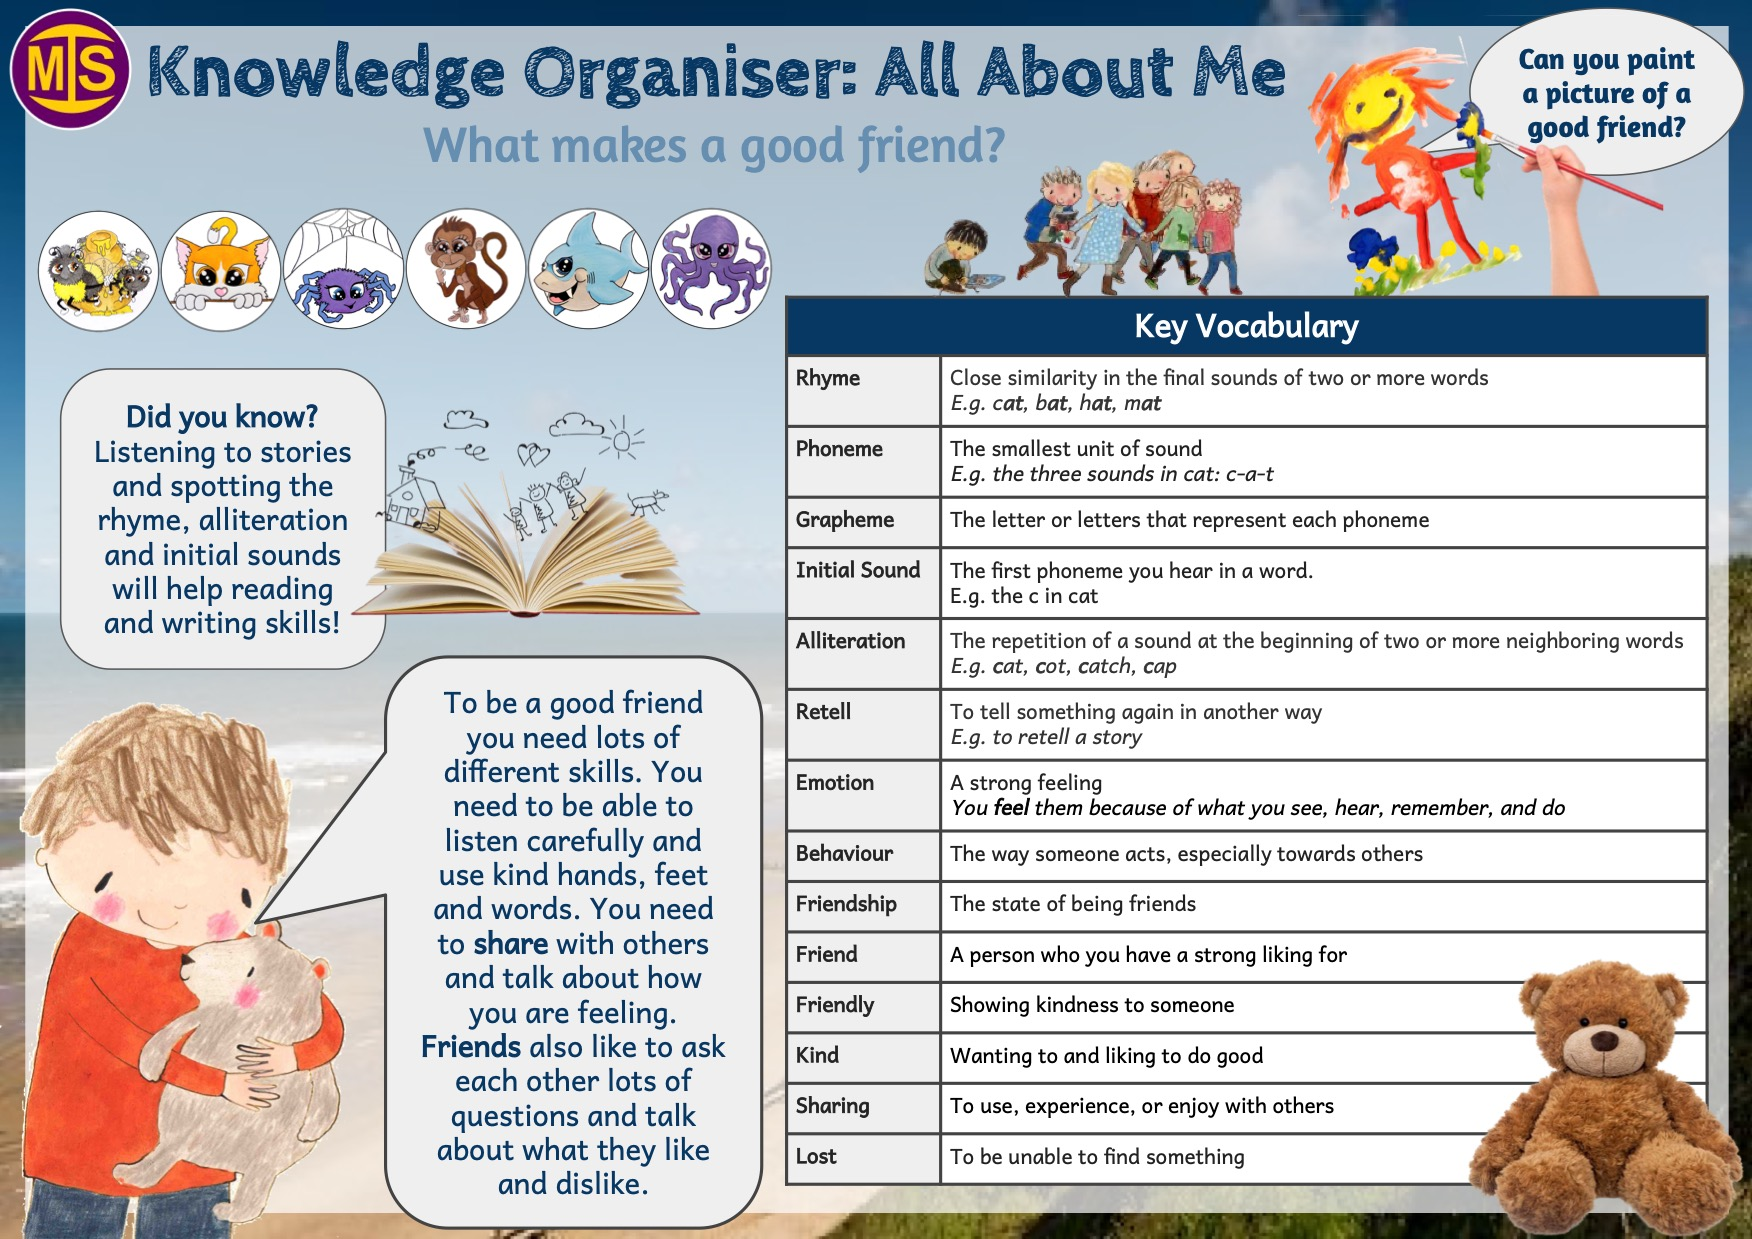 All About Me! Knowledge Organiser